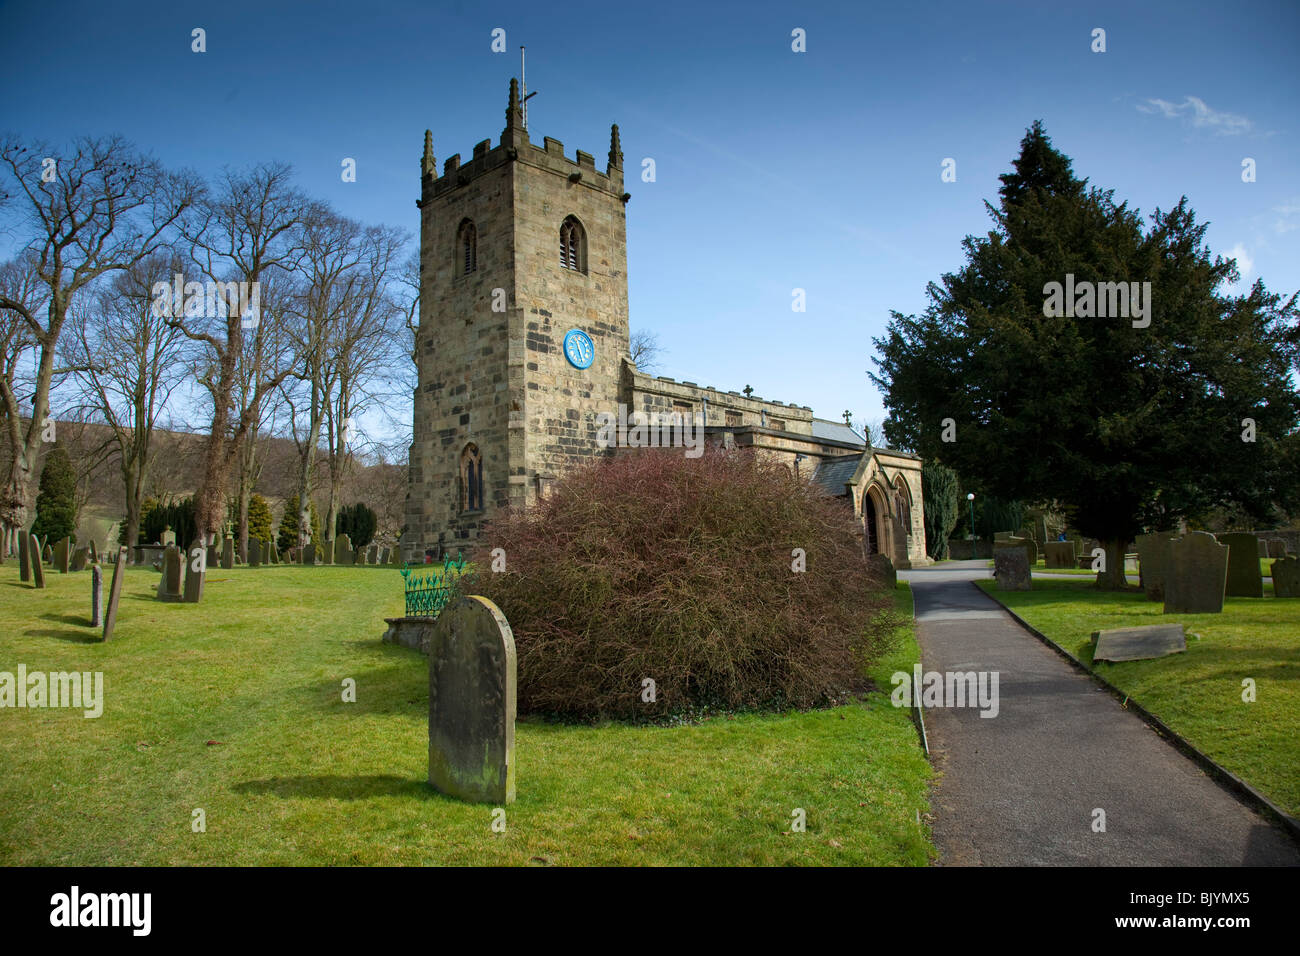 Eyam Church in the Peak District, Derbyshire, England, UK, Landscape, Blue Sky - Stock Image